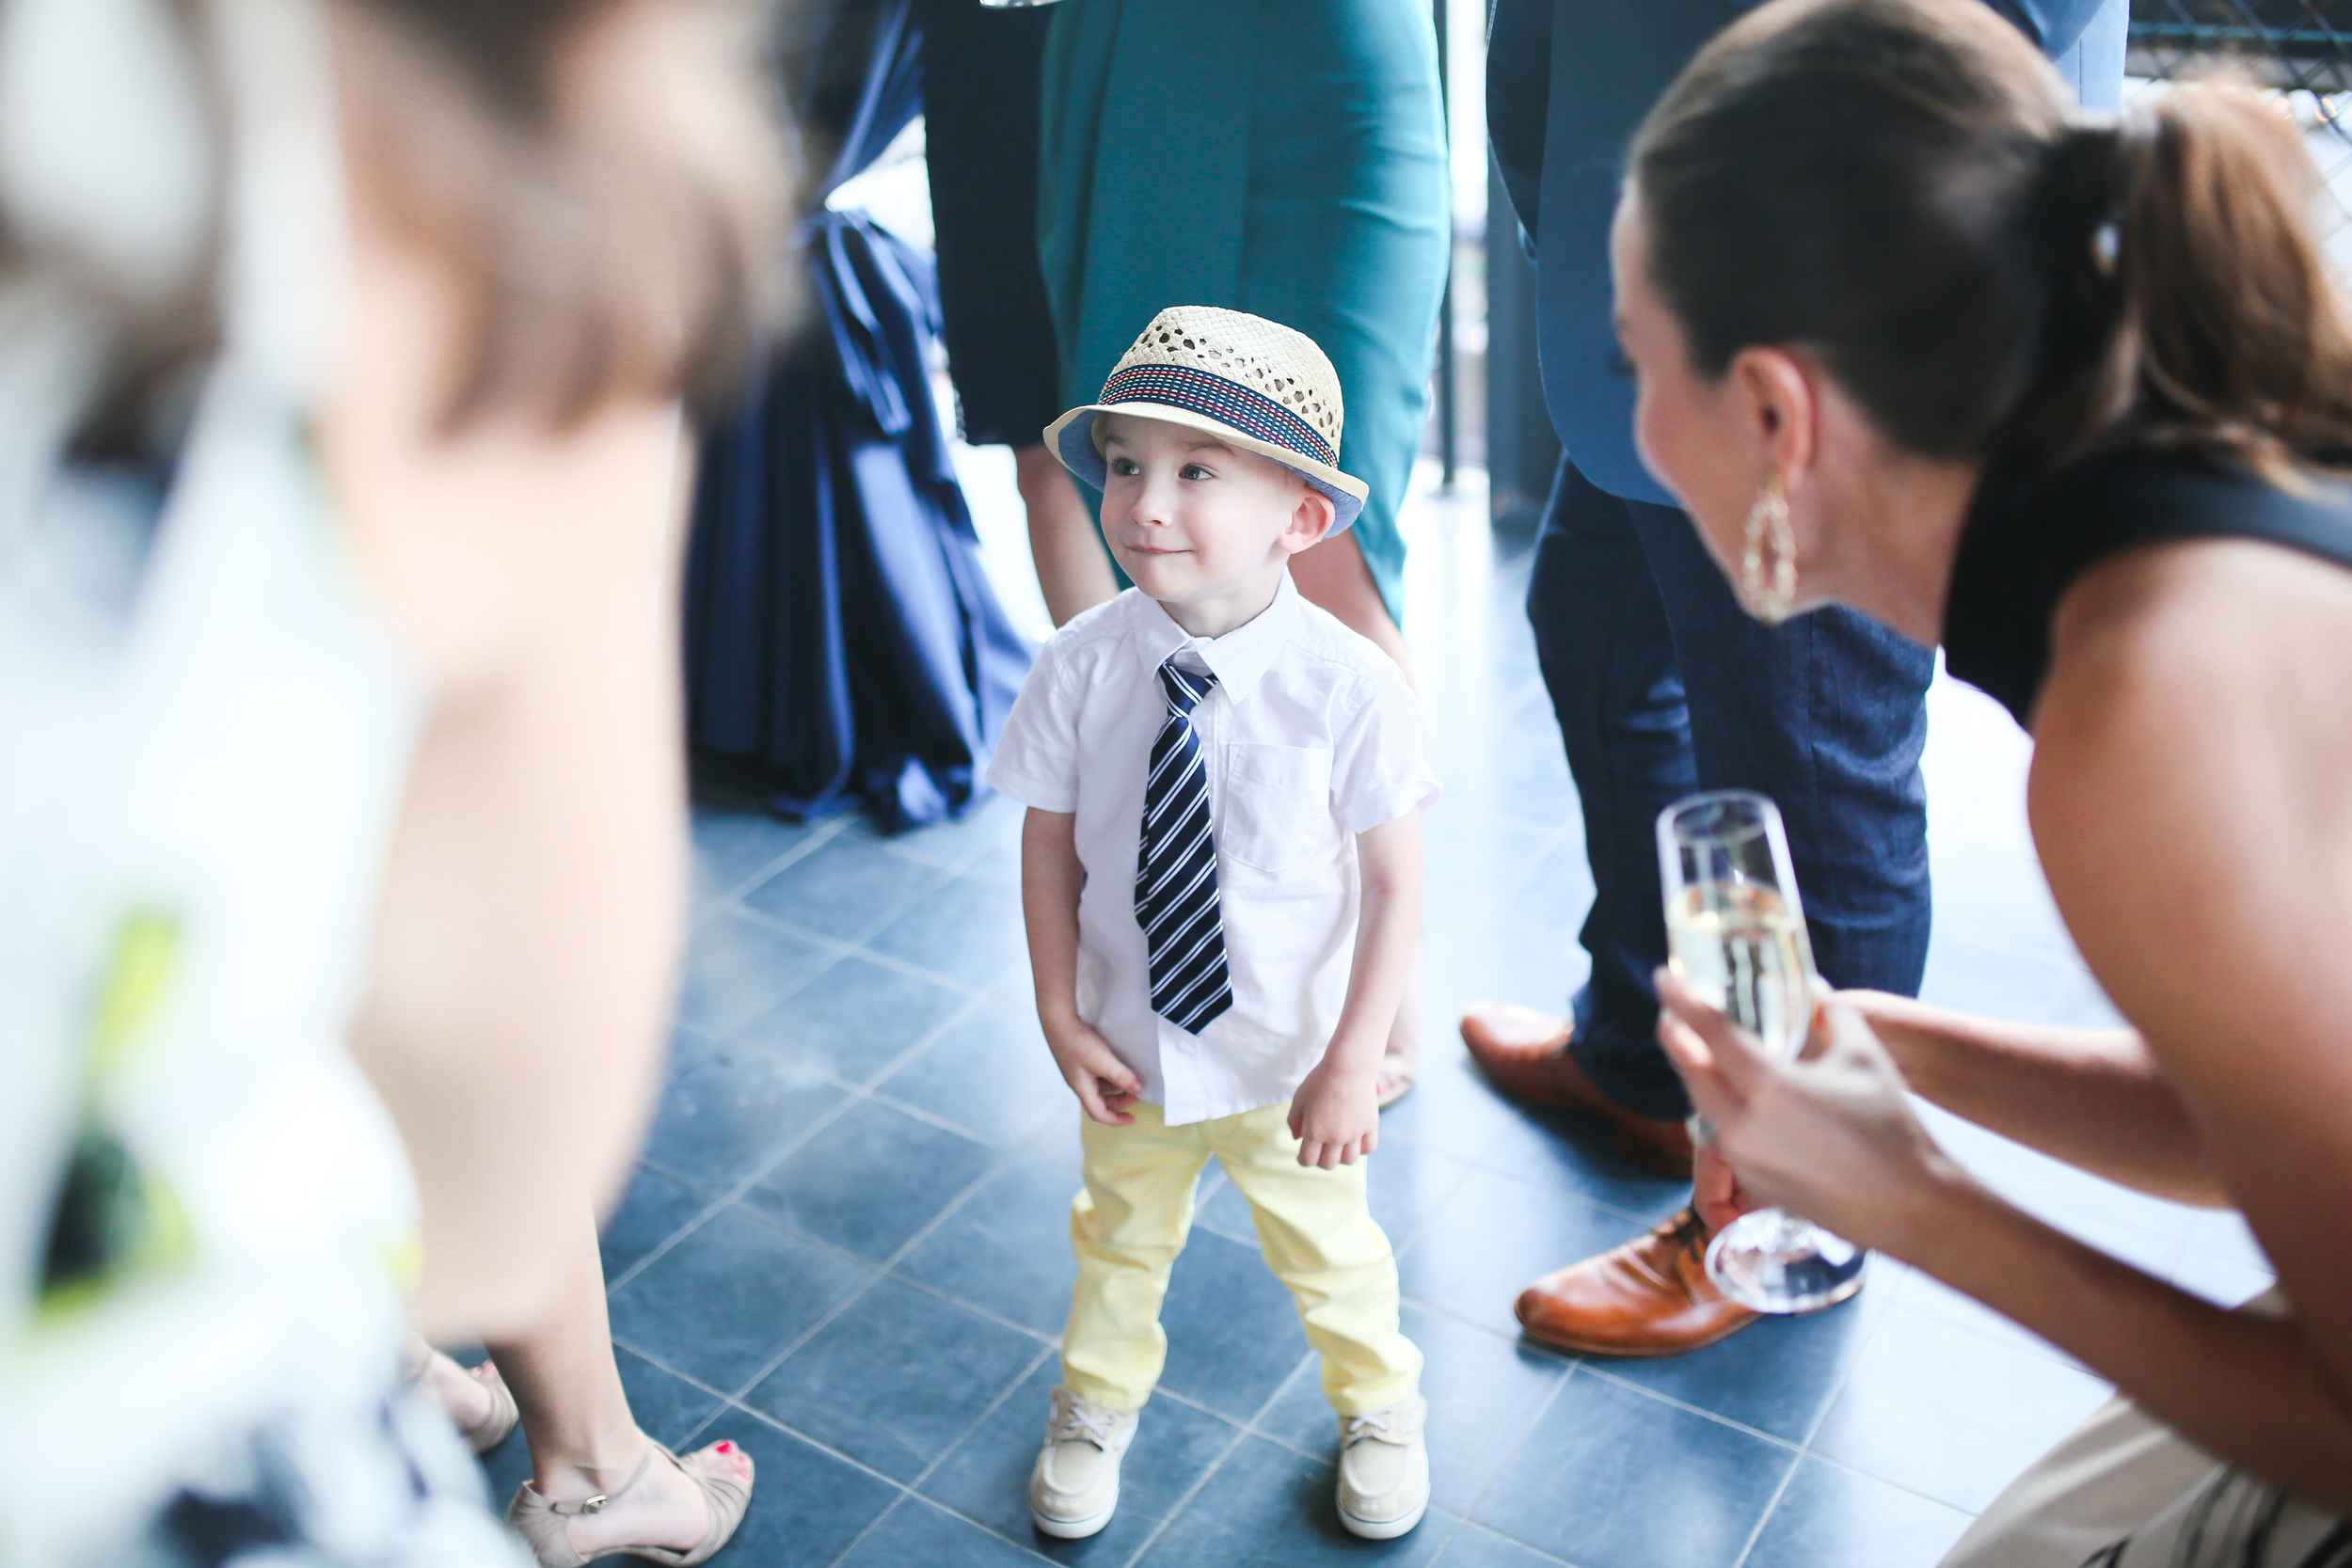 adorable little boy surrounded by ladies